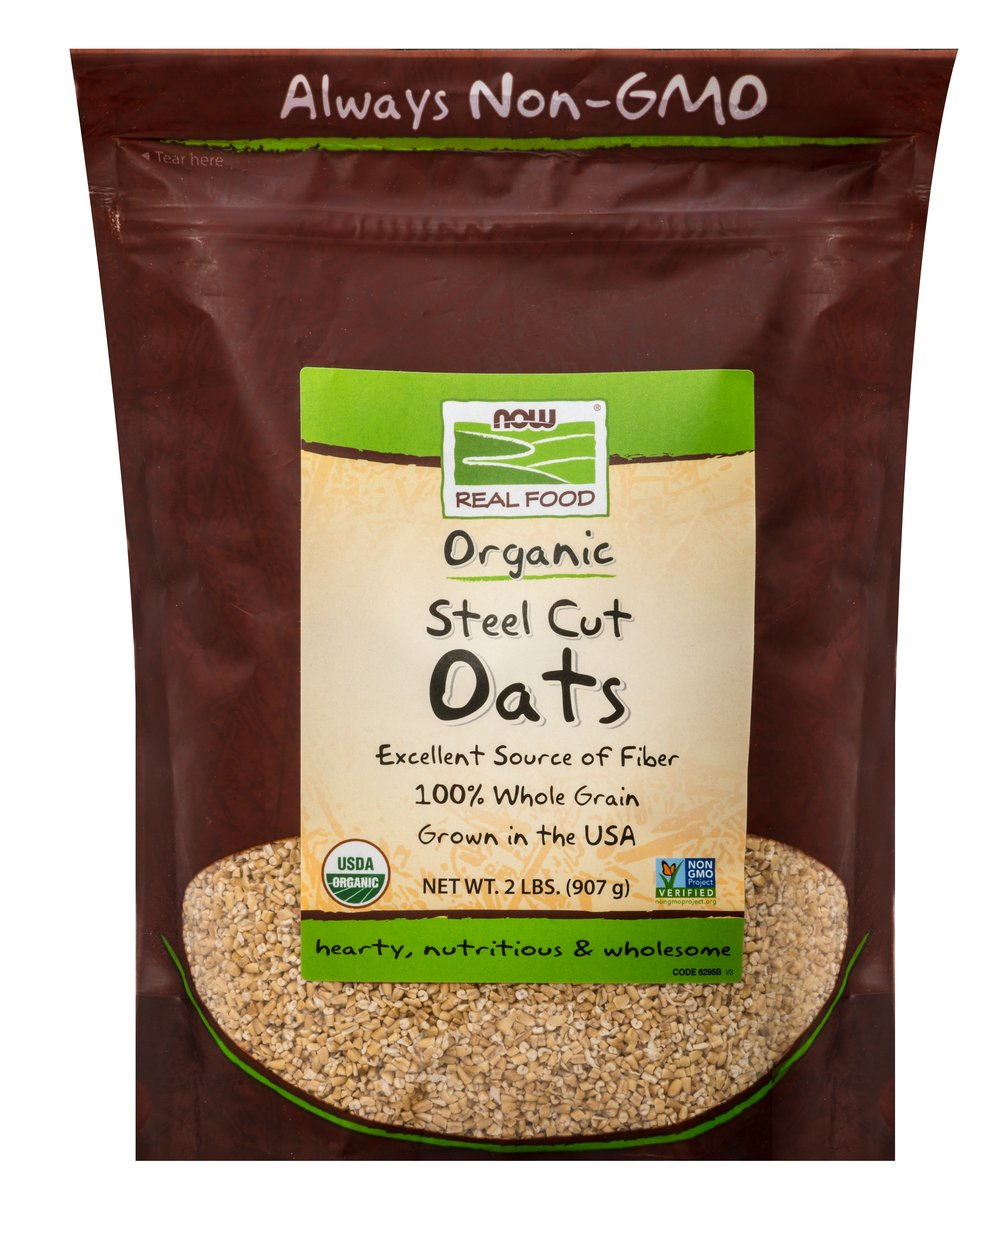 Steel Cut Oats <p>From the Manufacturer:</p><p>Hearty, nutritious, and wholesome. Steel cut oats are whole grain oat groats that have been cut into smaller pieces rather than being rolled to create rolled oats. Commonly used as a breakfast cereal.</p> 2 lb Bag  $8.99